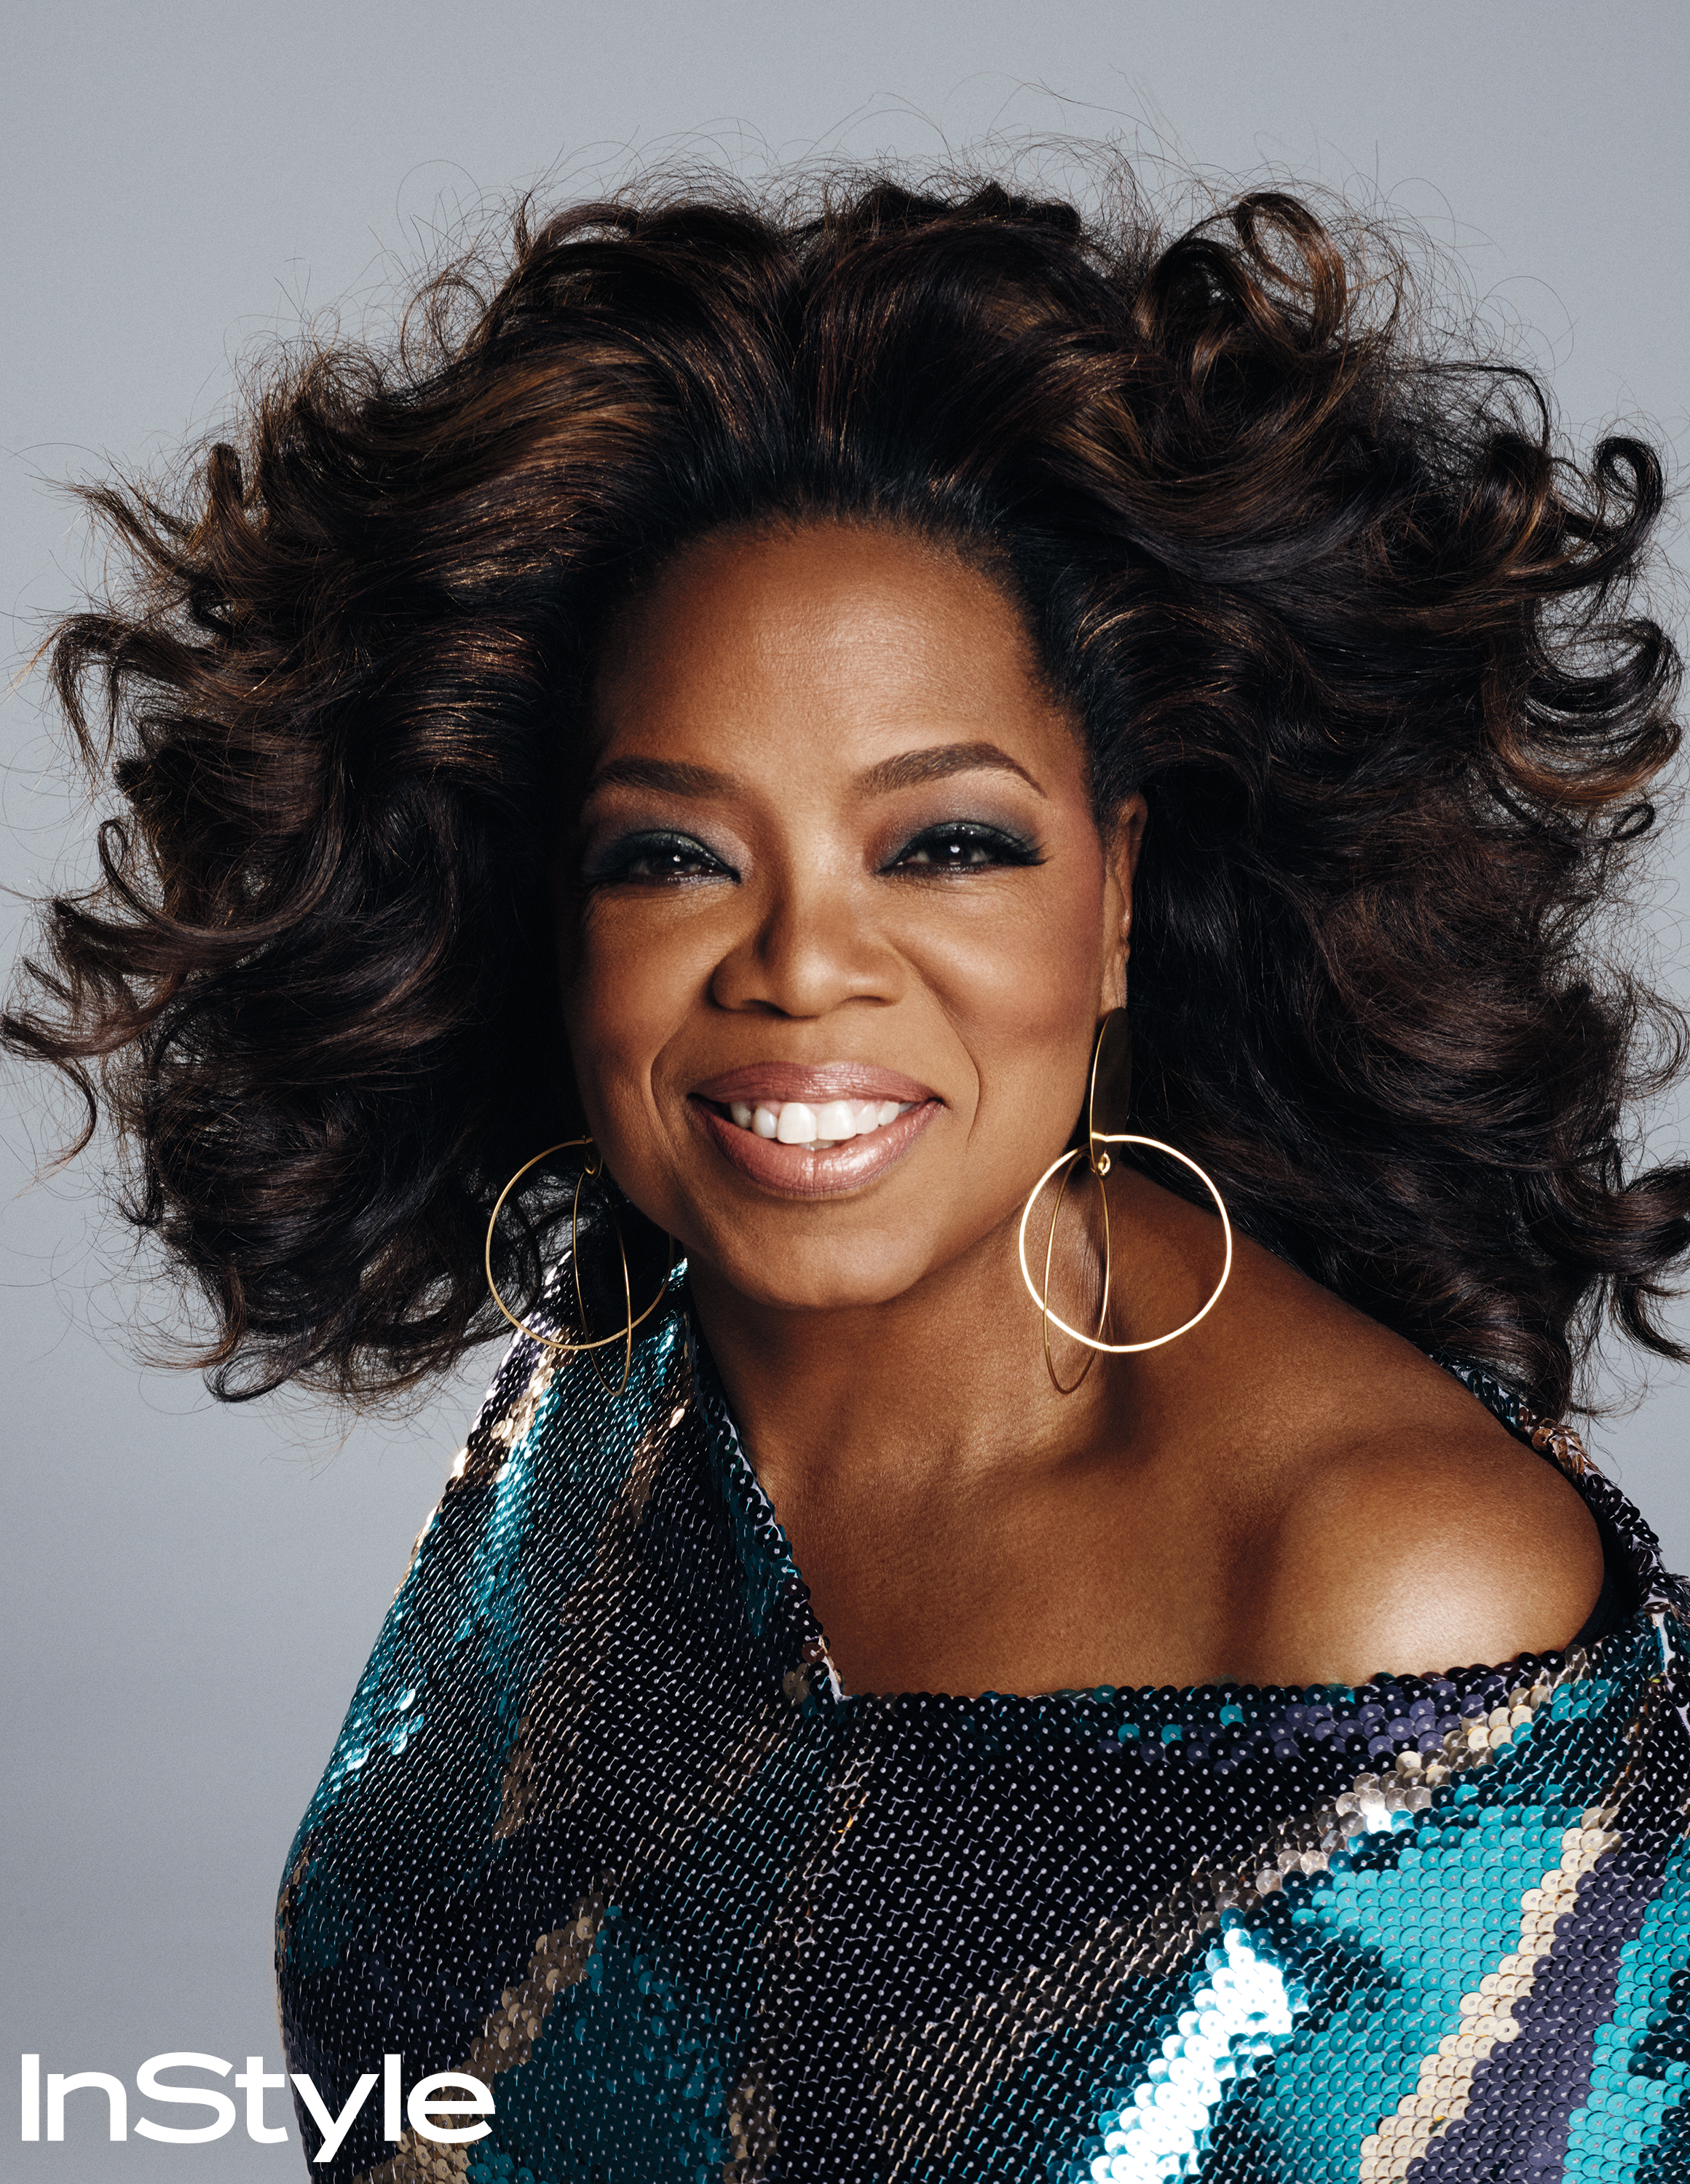 """Oprah Winfrey Says These Jeans Make Her""""Look and Feel One Size Smaller"""""""